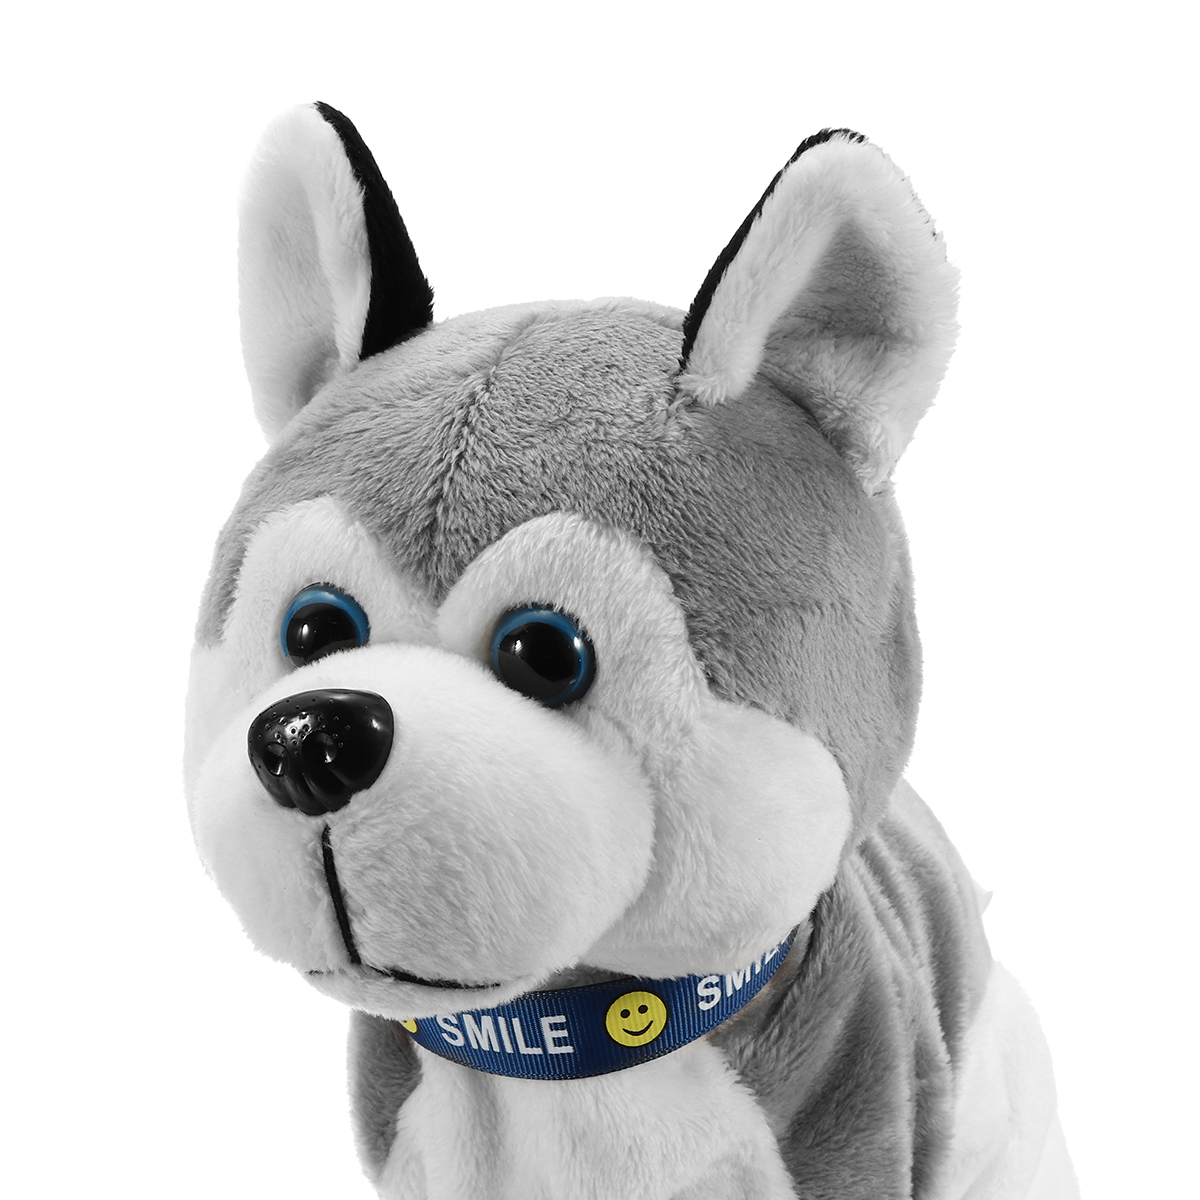 Interactive Dog Electronic Pet Stuffed Plush Toy Control Walk Sound Husky Reacts Touch